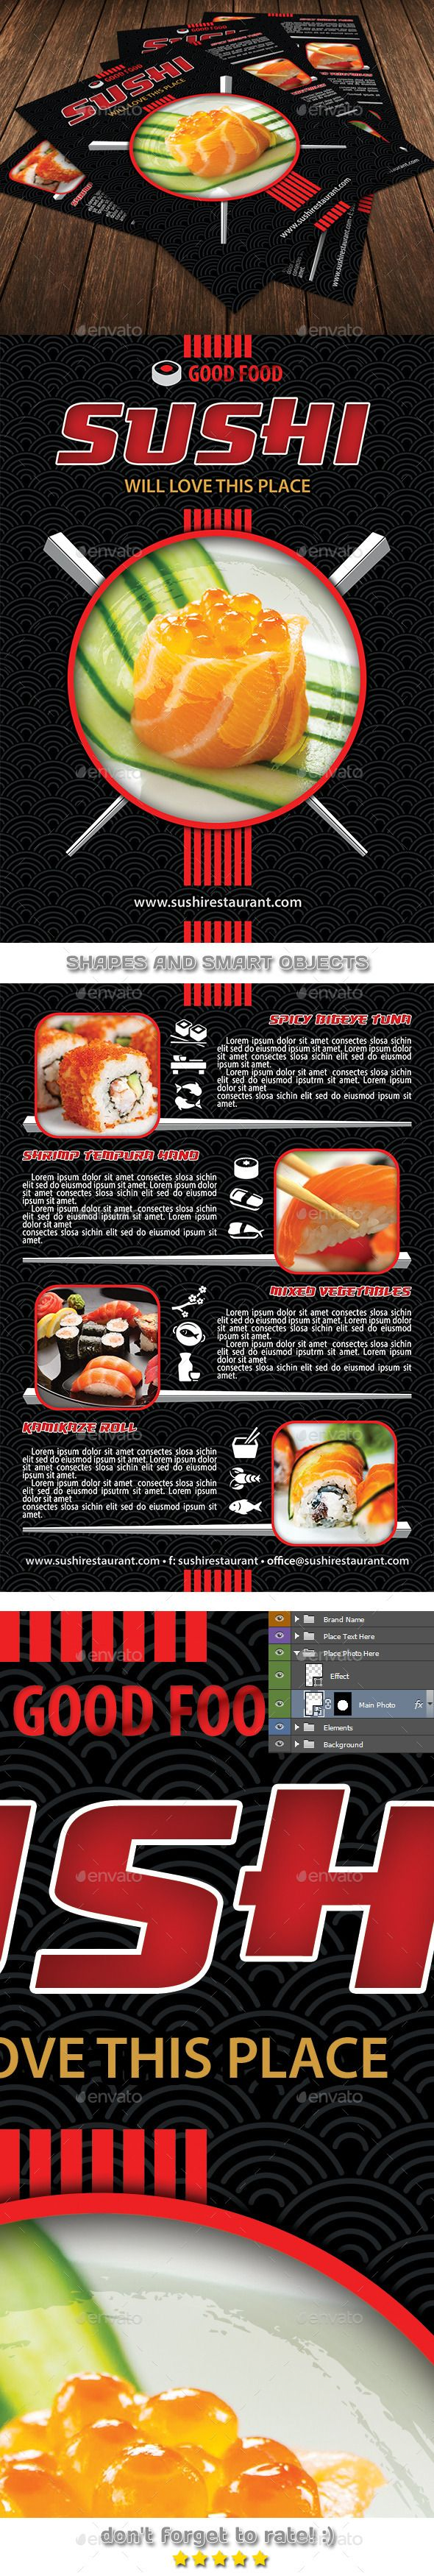 Sushi Restaurant #Menu #Flyer Template 105 - #Restaurant Flyers Download here: https://graphicriver.net/item/sushi-restaurant-menu-flyer-template-105/12140252?ref=alena994